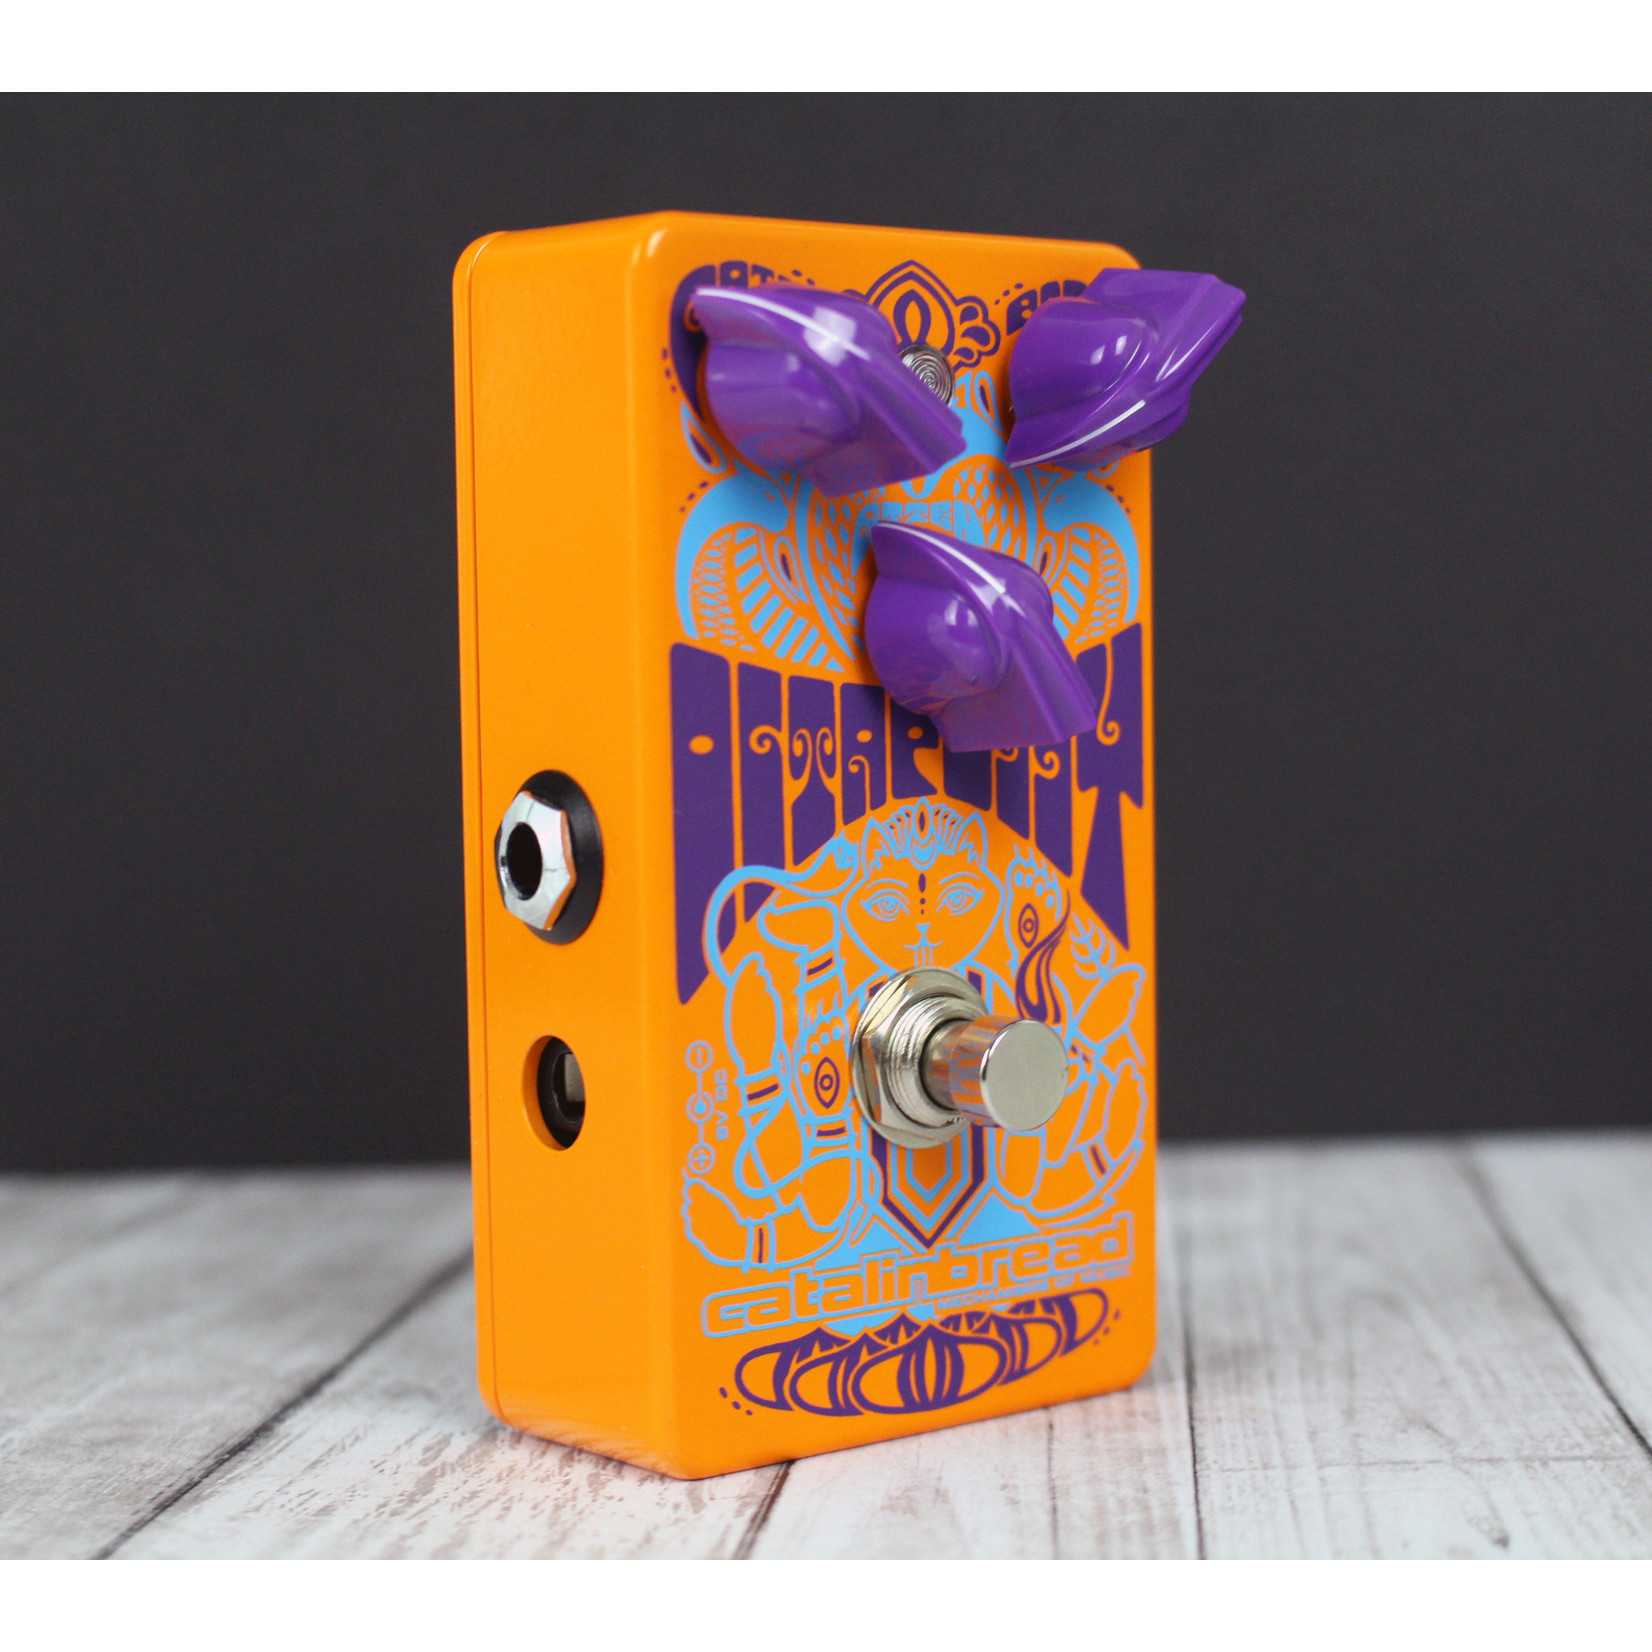 Catalinbread Catalinbread Octapussy Octave/Fuzz